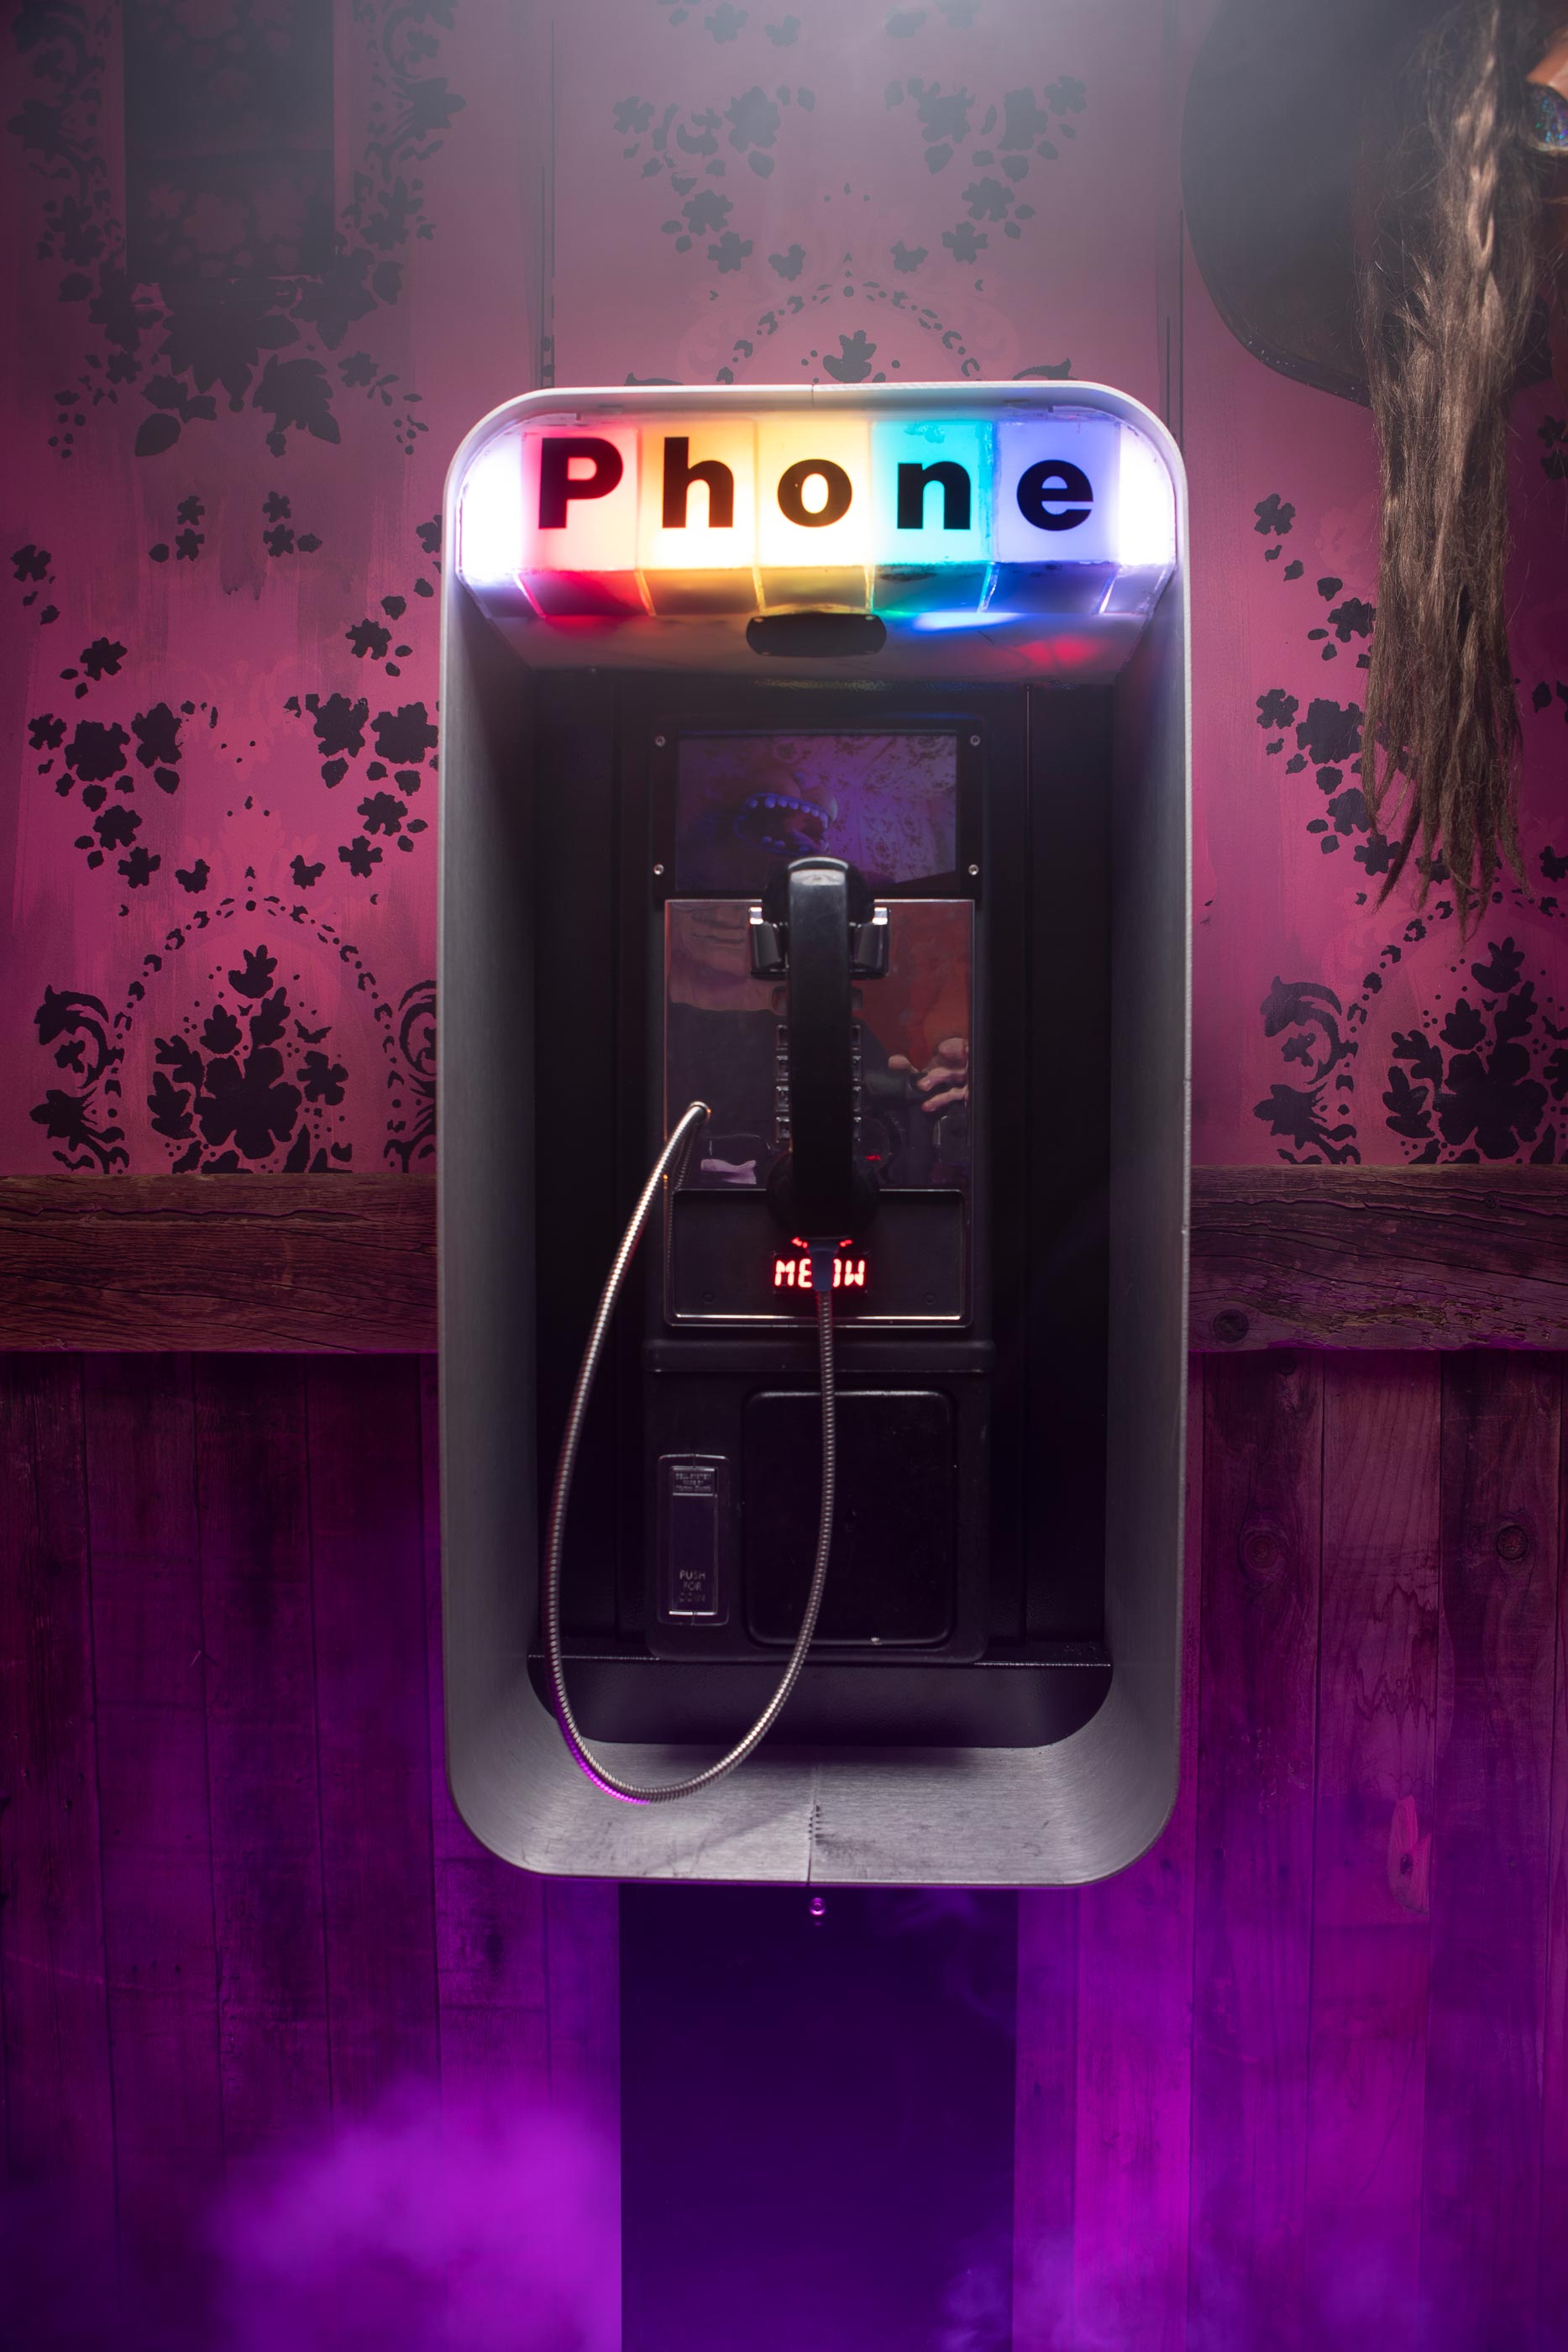 Factory-Obscura-Meow-Wolf-collaboration-phone-2.jpg